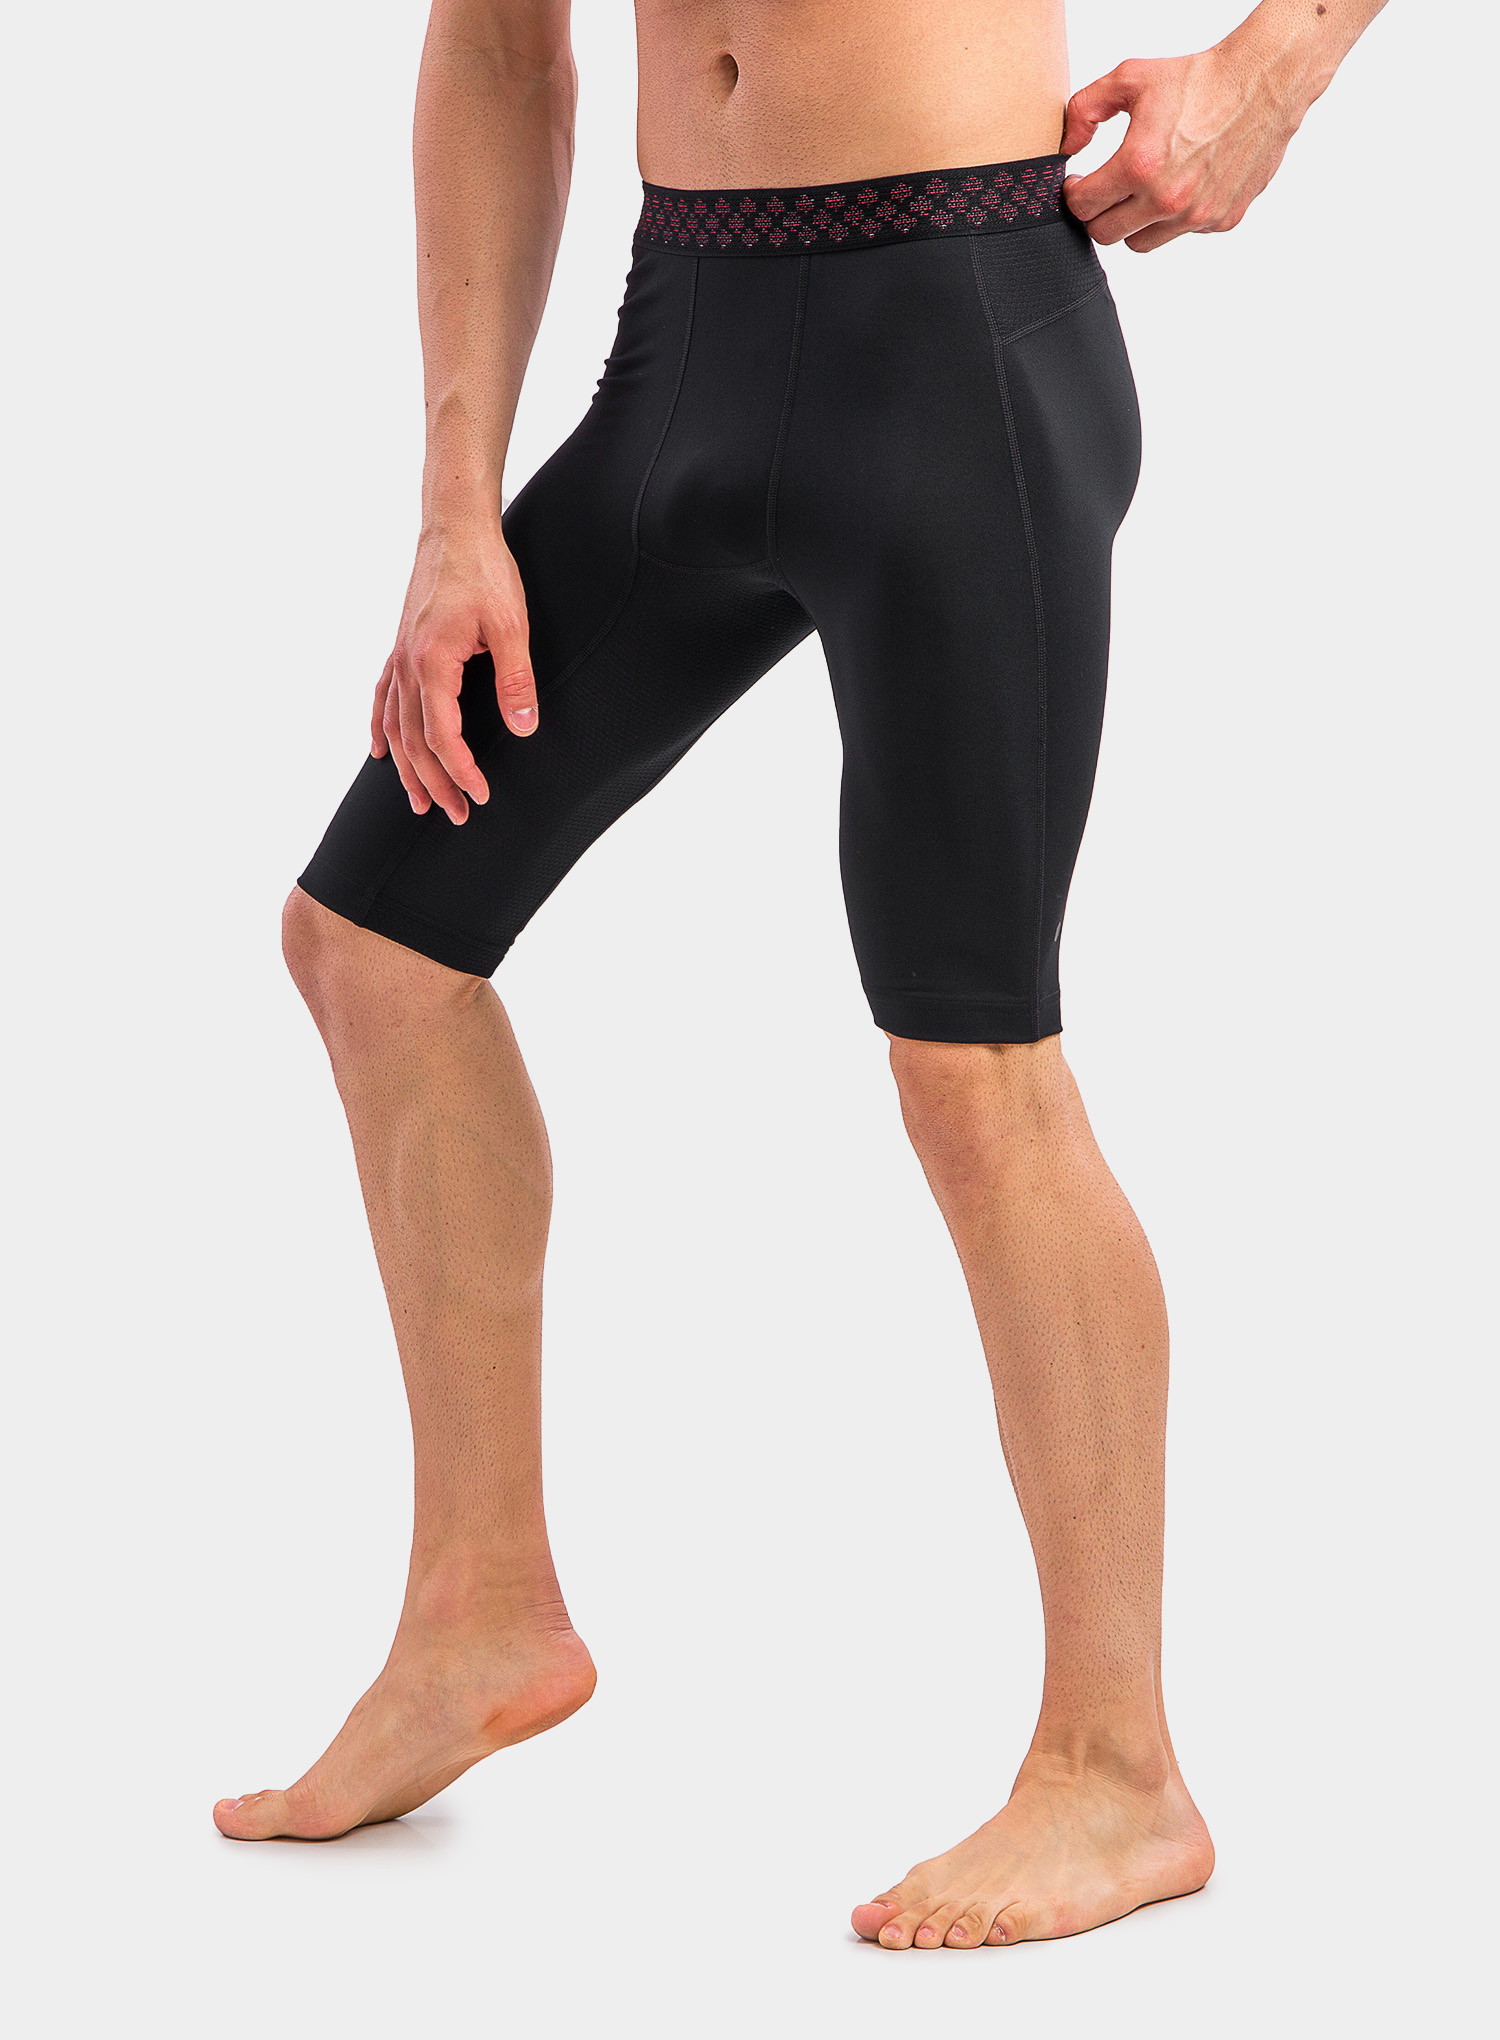 Spodenki Under Armour HG Rush 2.0 Long Shorts - black/black - zdjęcie nr. 9